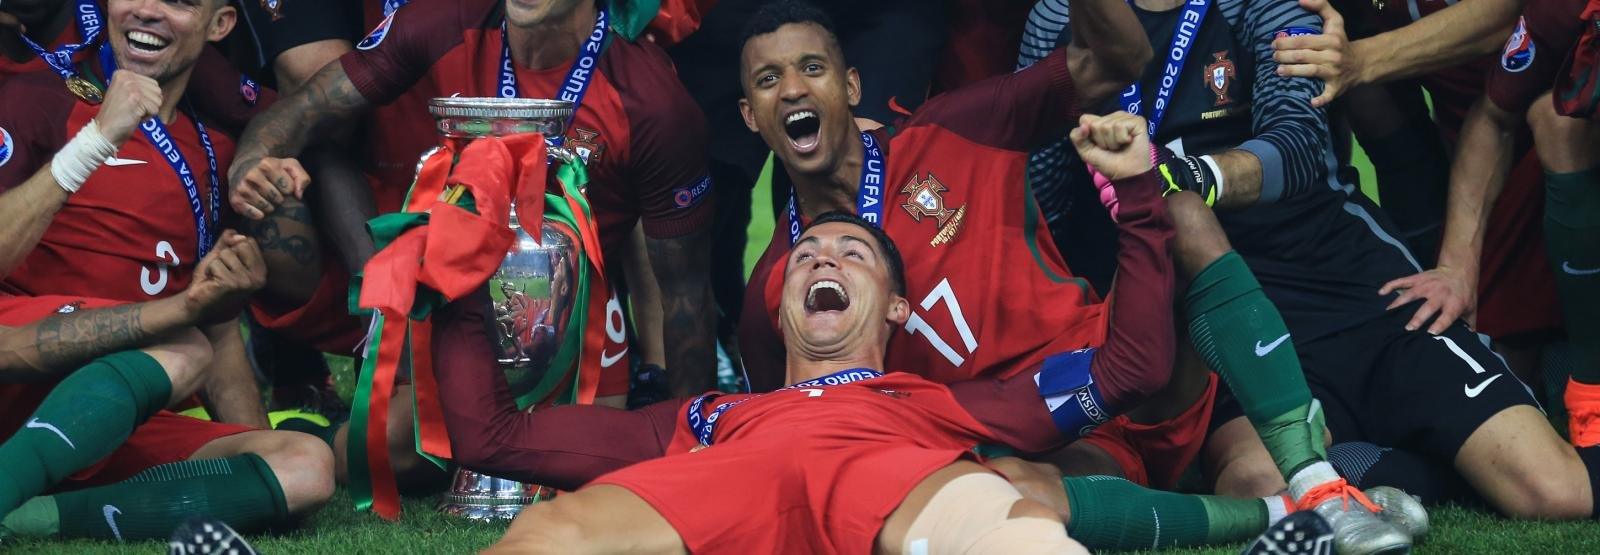 Portugal 1-0 France (AET): EURO 2016 Final Report